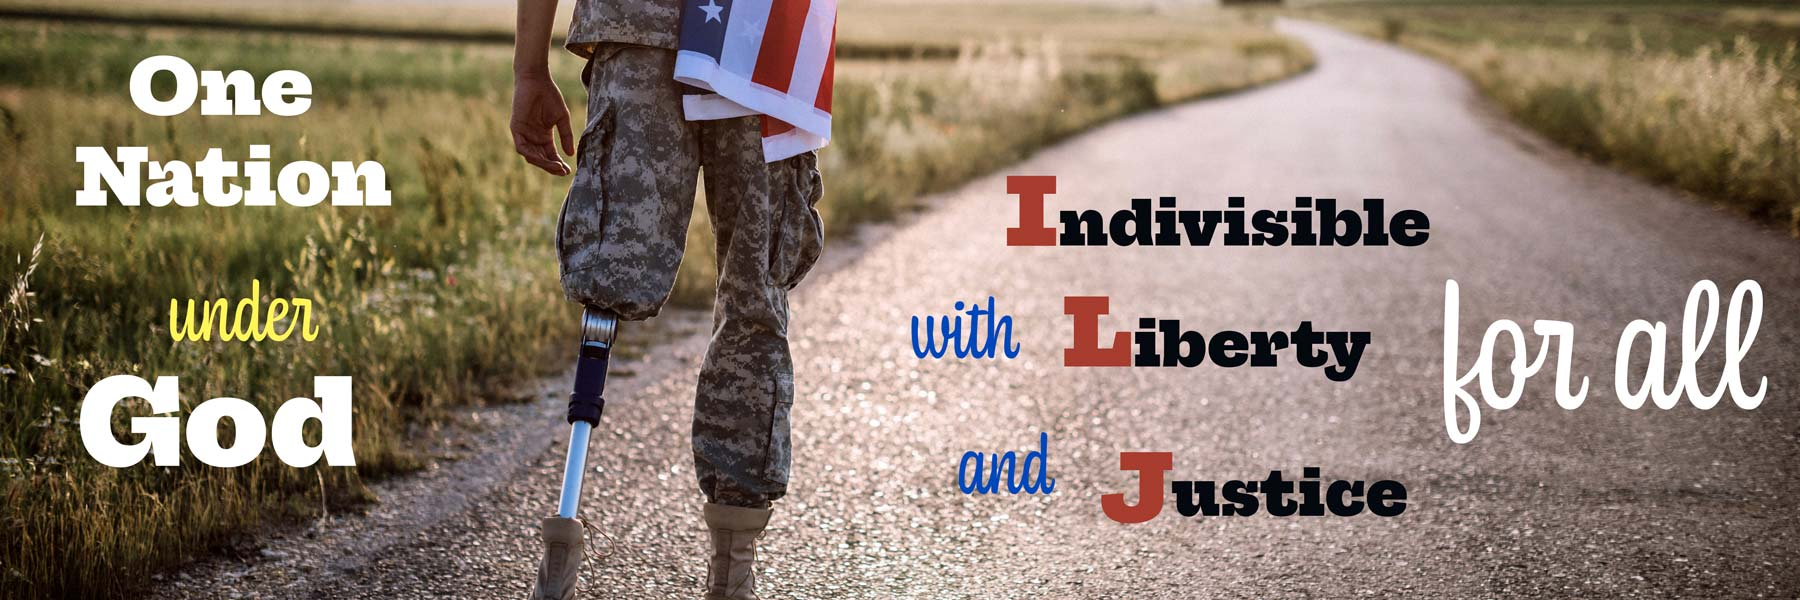 vet amputee walking down a road with words one nation under God, indivisible with liberty and justice for all